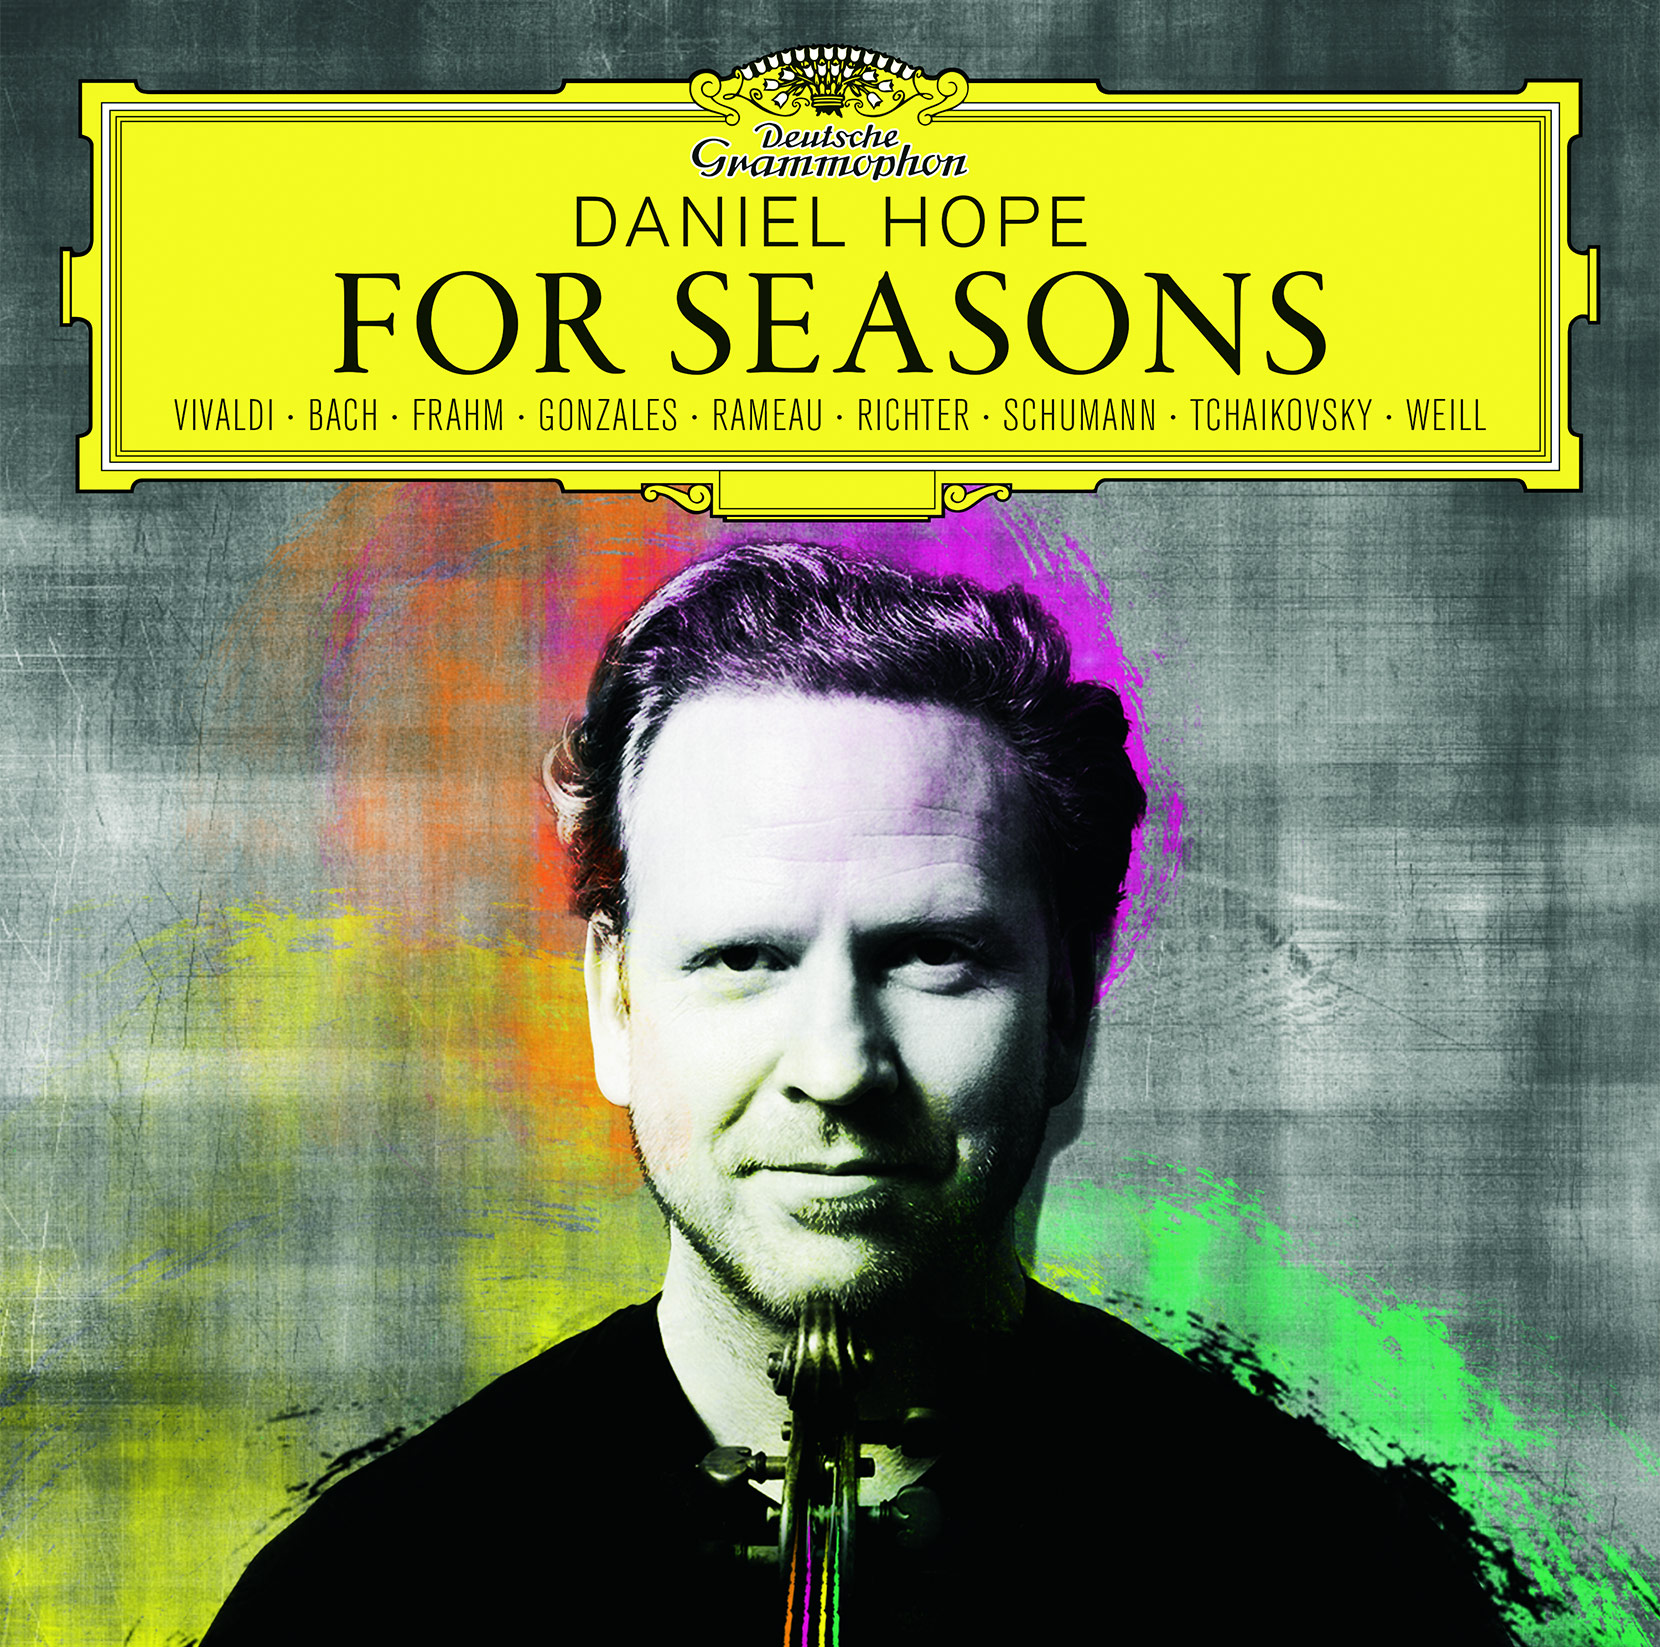 Week 465 Spring 1 By Antonio Vivaldi Recomposed By Max Richter And Daniel Hope Beautiful Song Of The Week